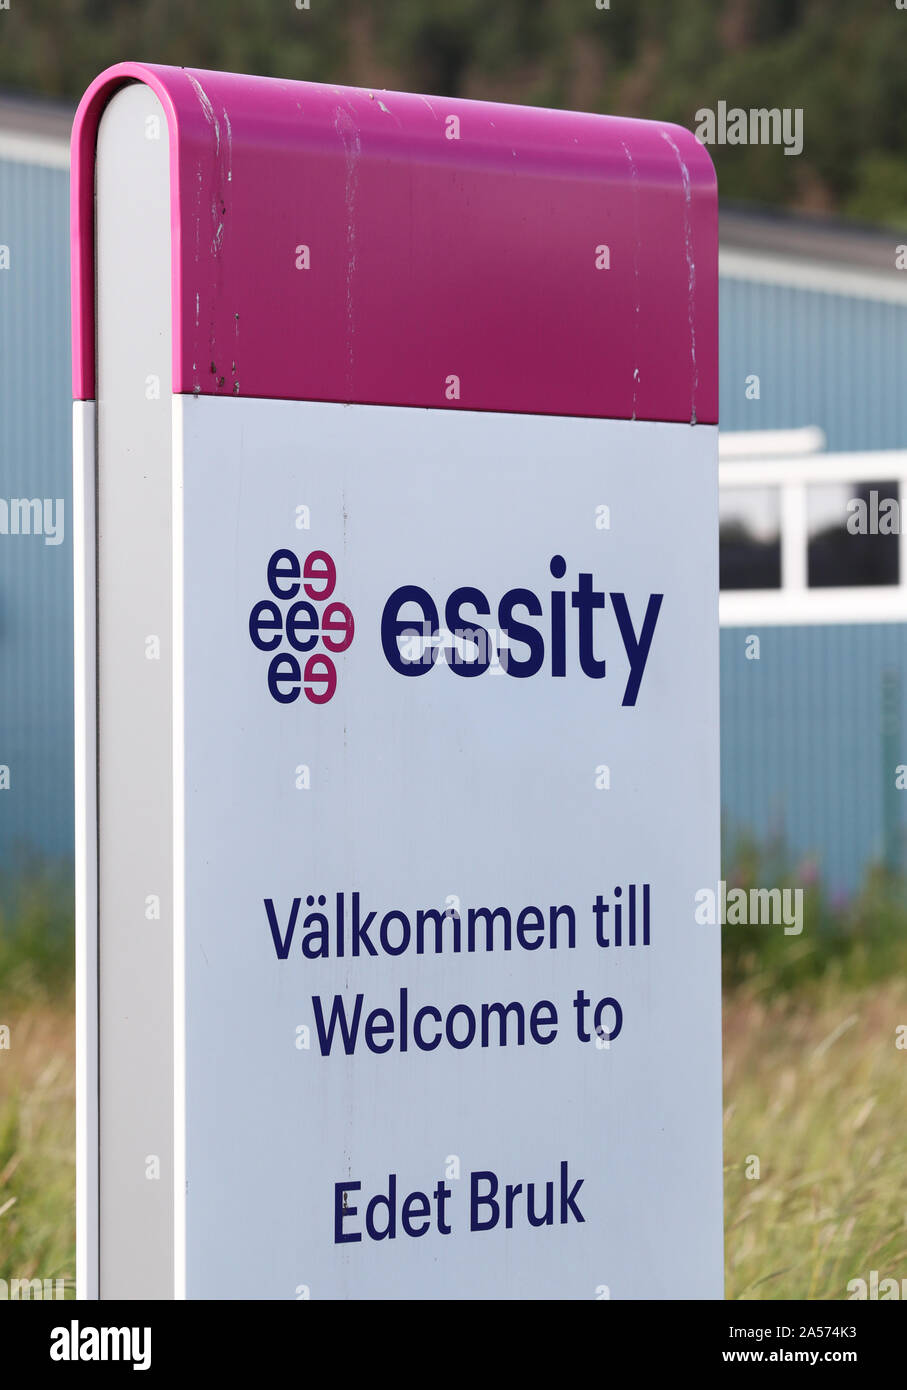 Essity in Lilla Edet. Essity Company is a global hygiene and health company.Photo Jeppe Gustafsson Stock Photo